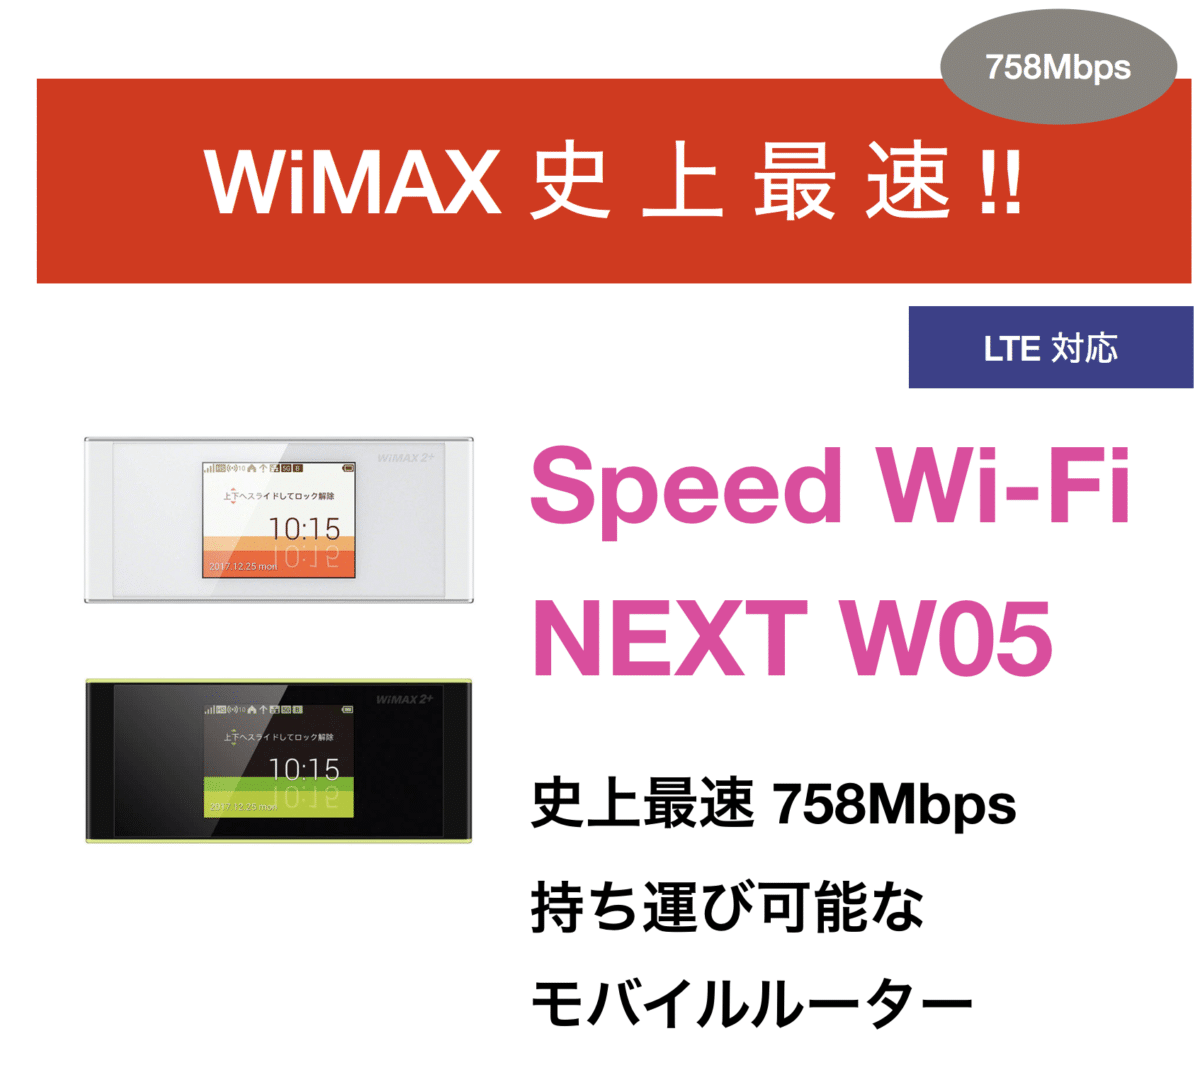 Speed Wi-Fi NEXT W05の最大通信速度が758Mbpsにアップしました